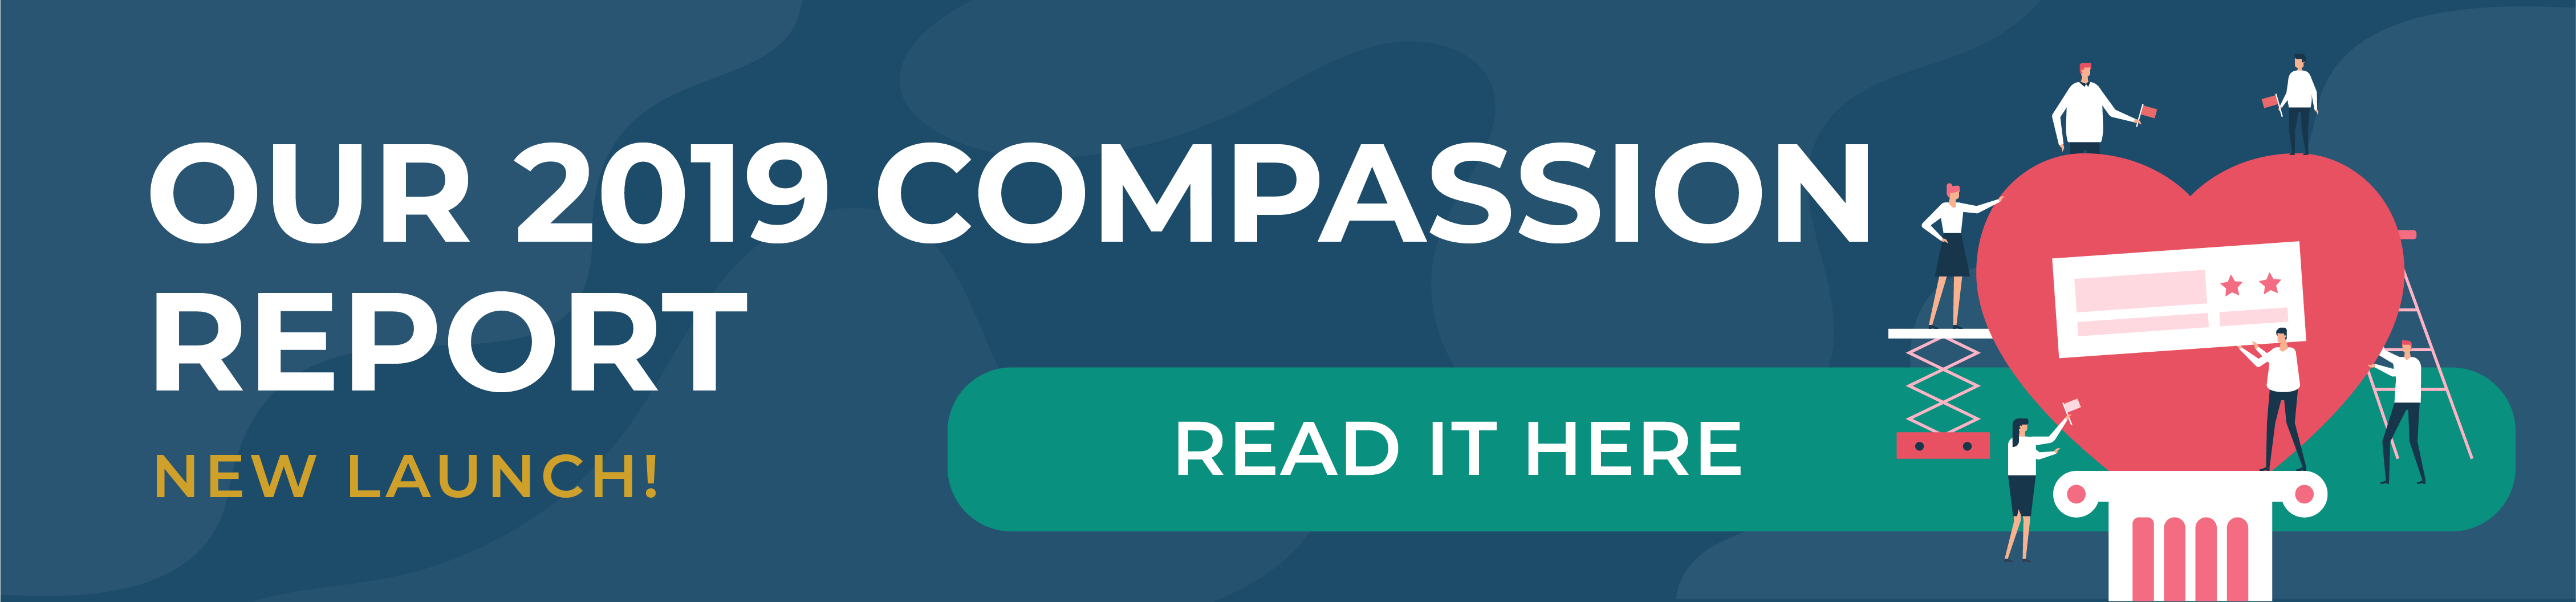 COMPASSION REPORT 2019 email signature